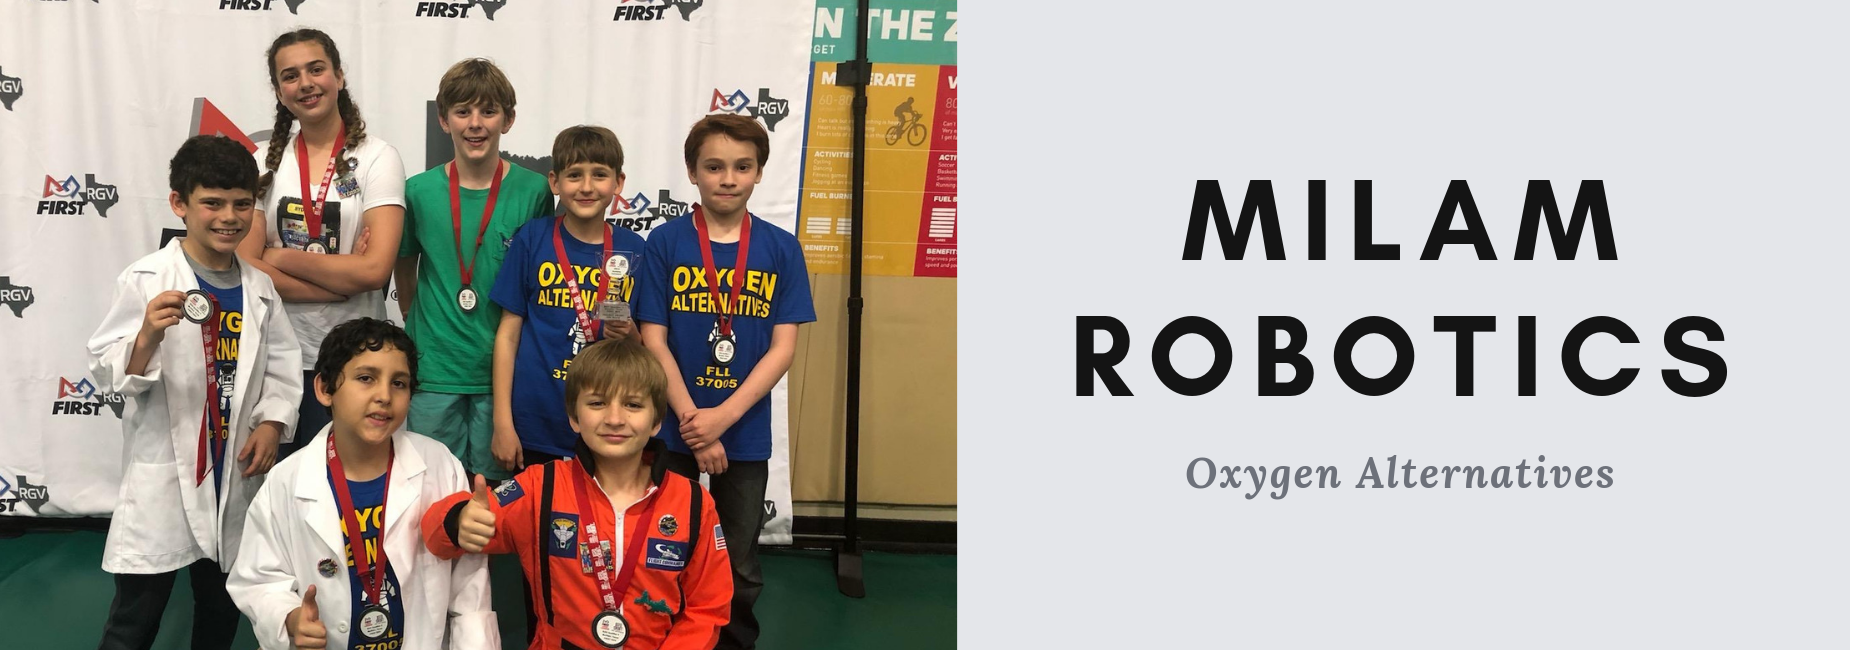 Milam Robotics team